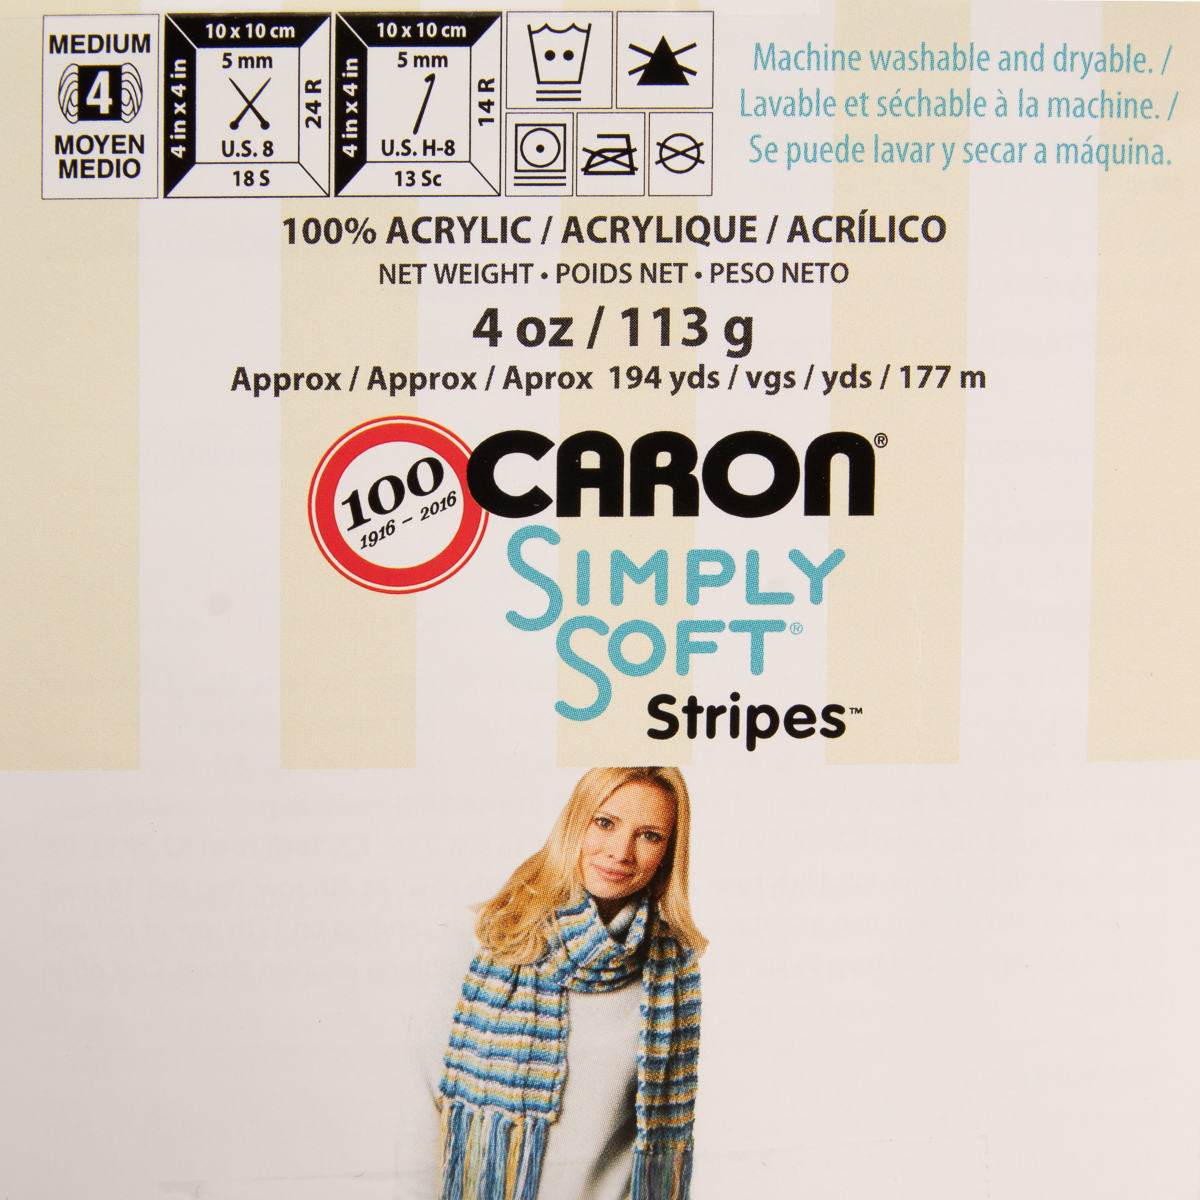 3pk-Caron-Simply-Soft-Stripes-100-Acrylic-Yarn-Medium-4-Knit-Crocheting-Skeins thumbnail 11